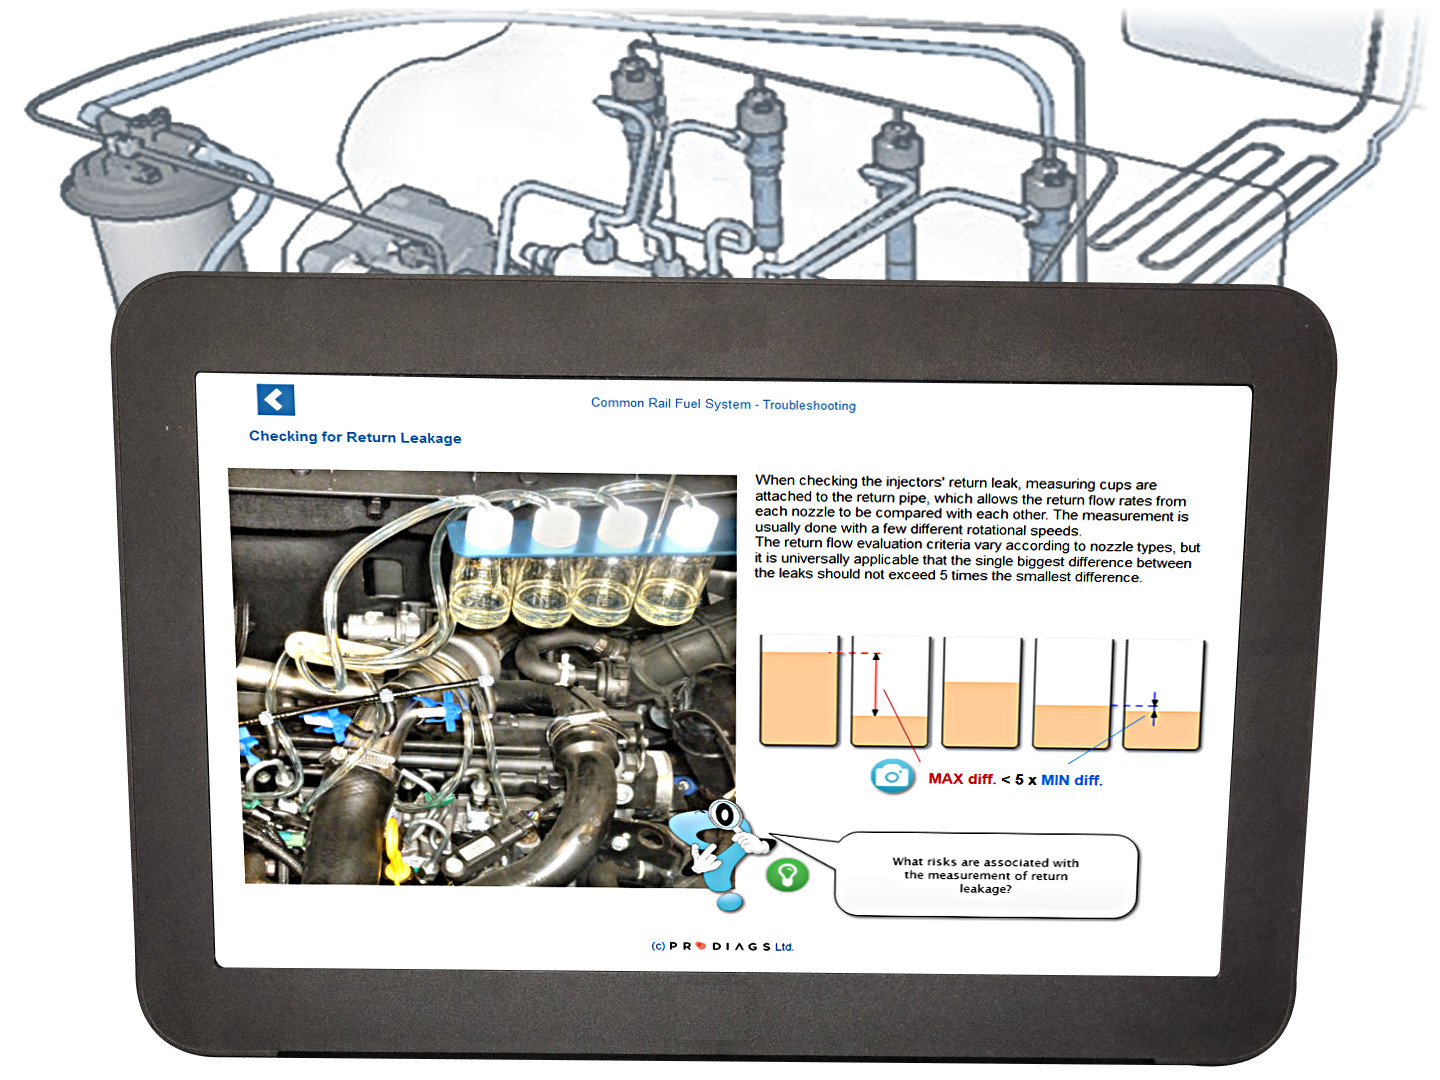 Learn how to diagnose common rail injectors and how a common rail injector tester works. With this online training module you will improve your common rail knowledge, and develop yourself into a master diesel mechanic.